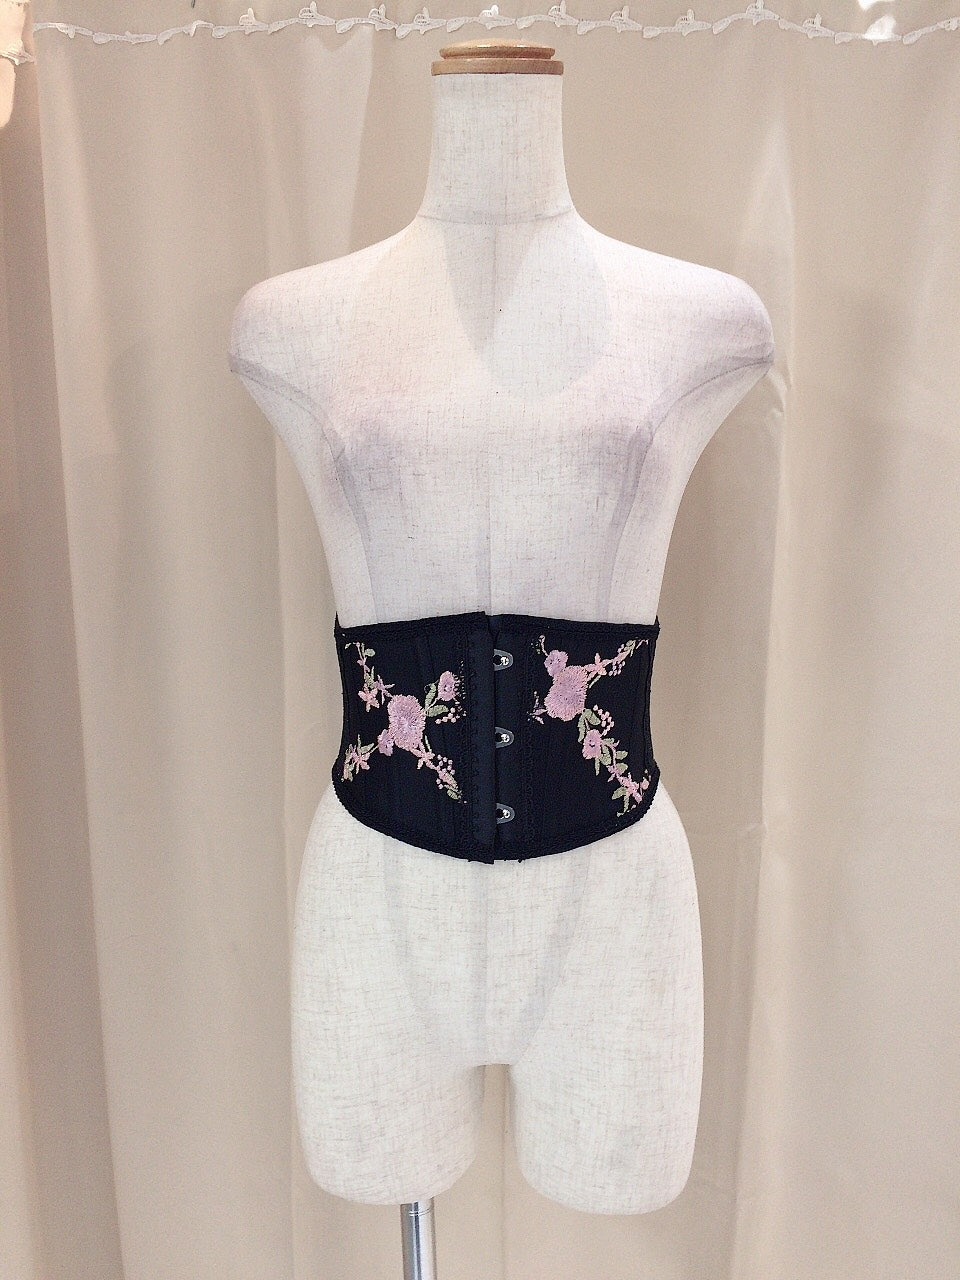 FLOWER EMBROIDERY LACE VERY SHORT CORSET(BK×PK)